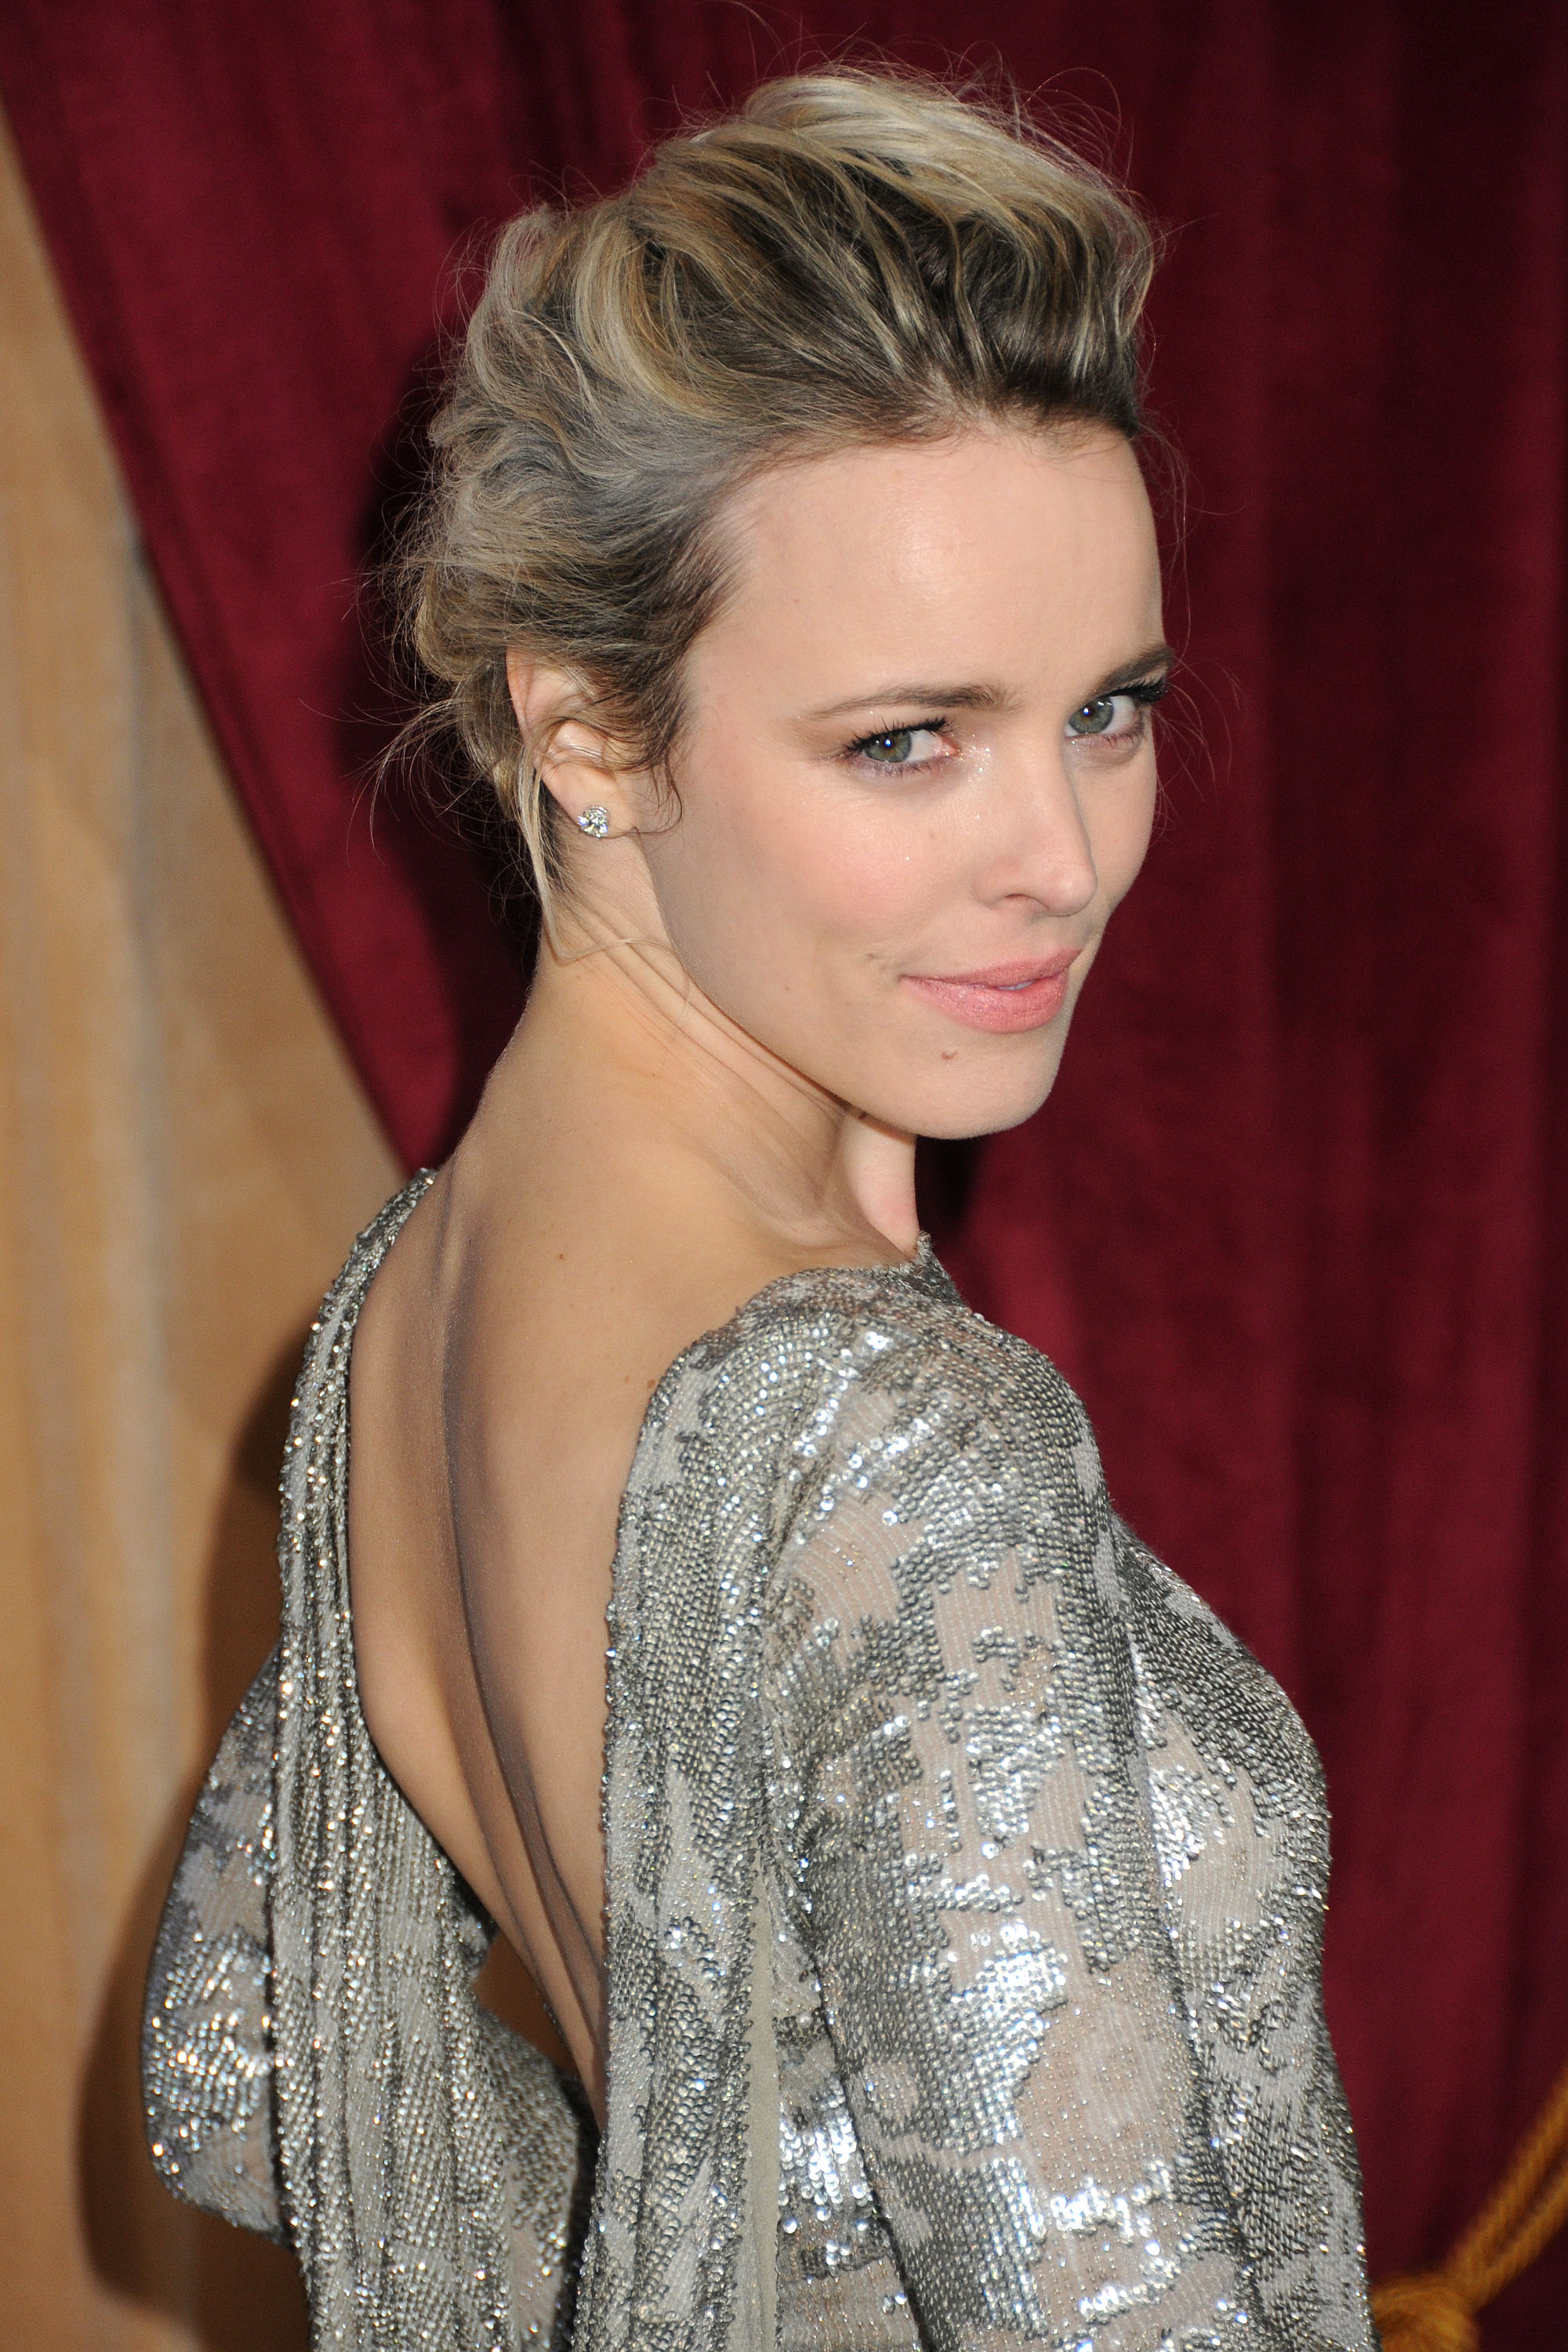 rachel mcadams photo 337 of 726 pics  wallpaper